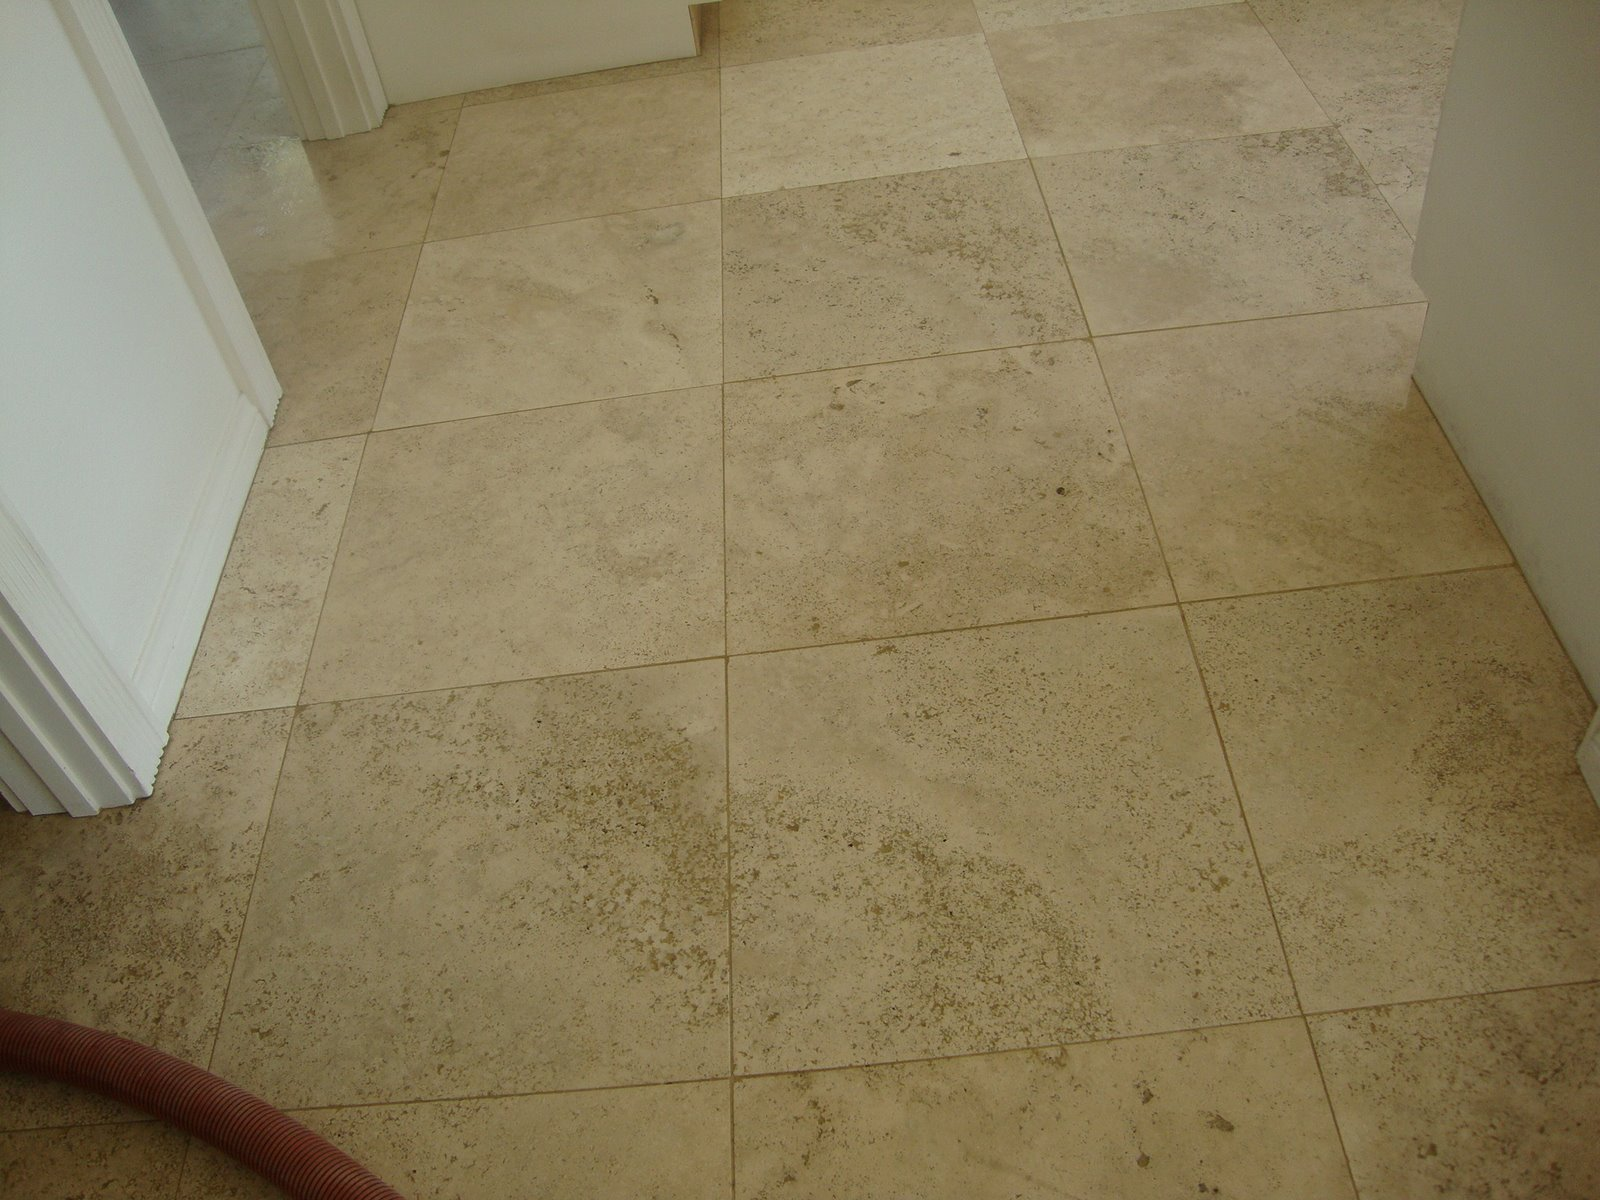 Tile and Grout Cleaning Professional: Tile and Grout ...